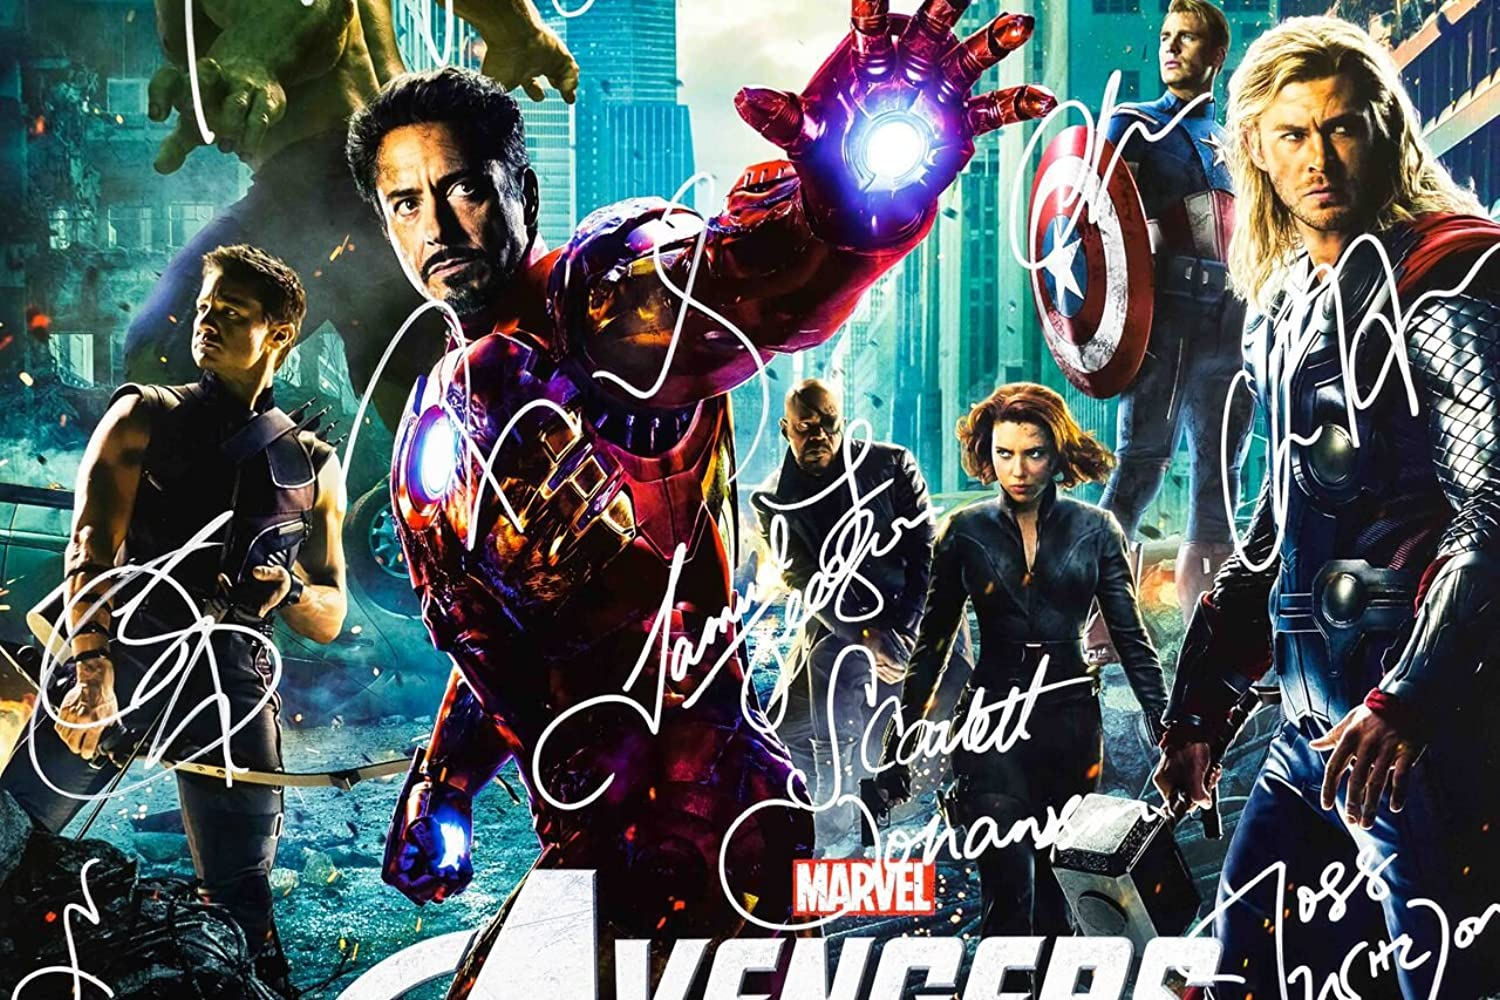 Amazon.com: The Avengers Cast Signed Movie Poster Wood Framed with ...